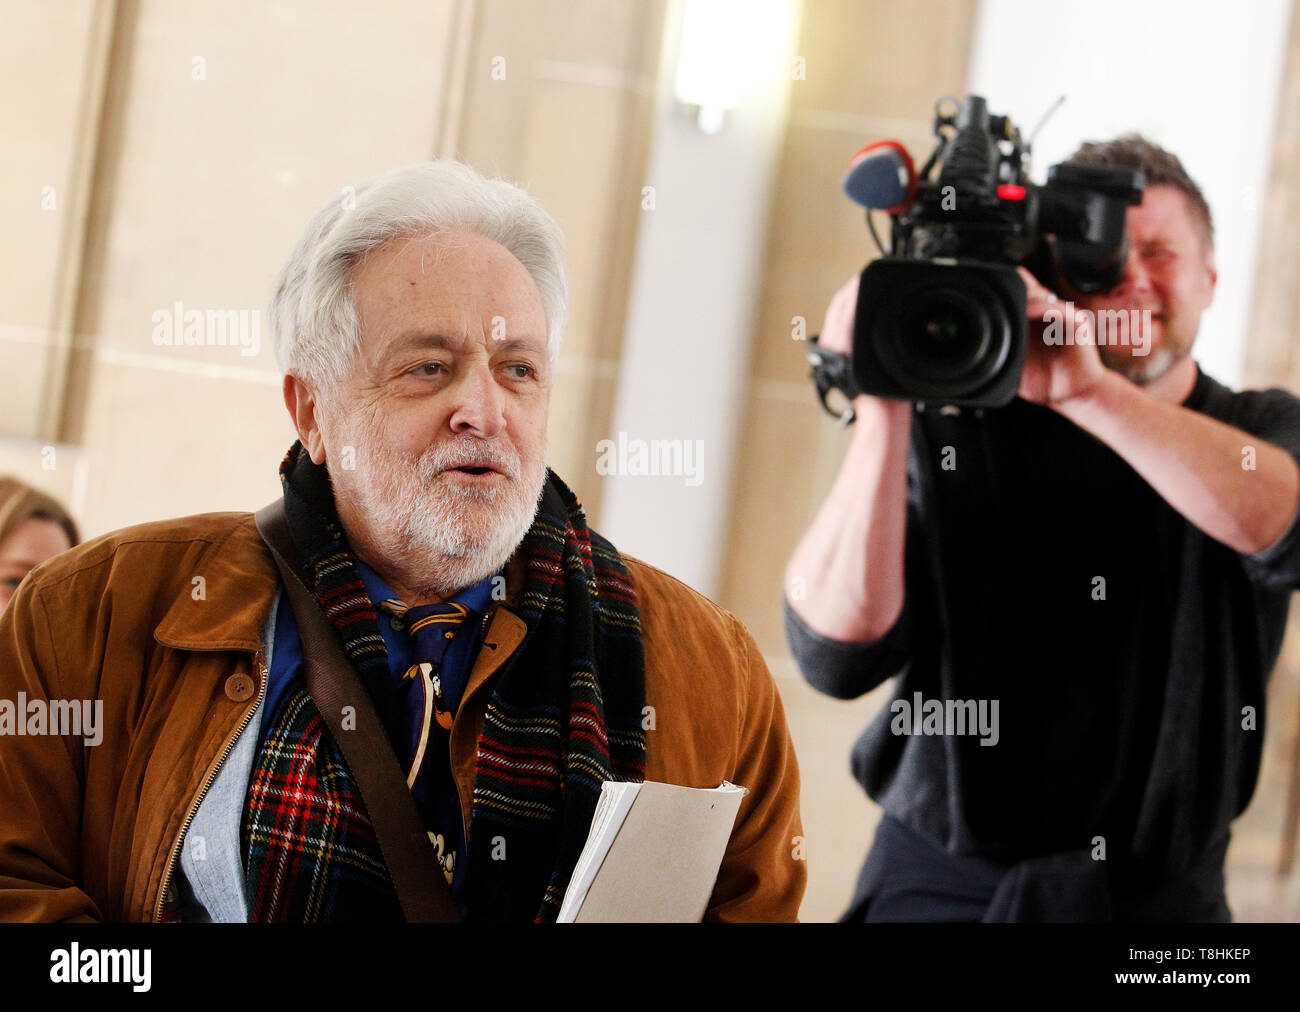 Duisburg, Germany. 13th May, 2019. The publicist Henryk M. Broder (l), accused of insult, is filmed by a cameraman before the trial begins. In September 2016, at the request of the weekly newspaper 'Junge Freiheit', Broder had said about the Islamic scholar Lamya Kaddor that she had 'a gossip on her hands'. Broder appealed against an order of punishment, which is why the trial is now at trial. Credit: Roland Weihrauch/dpa/Alamy Live News - Stock Image